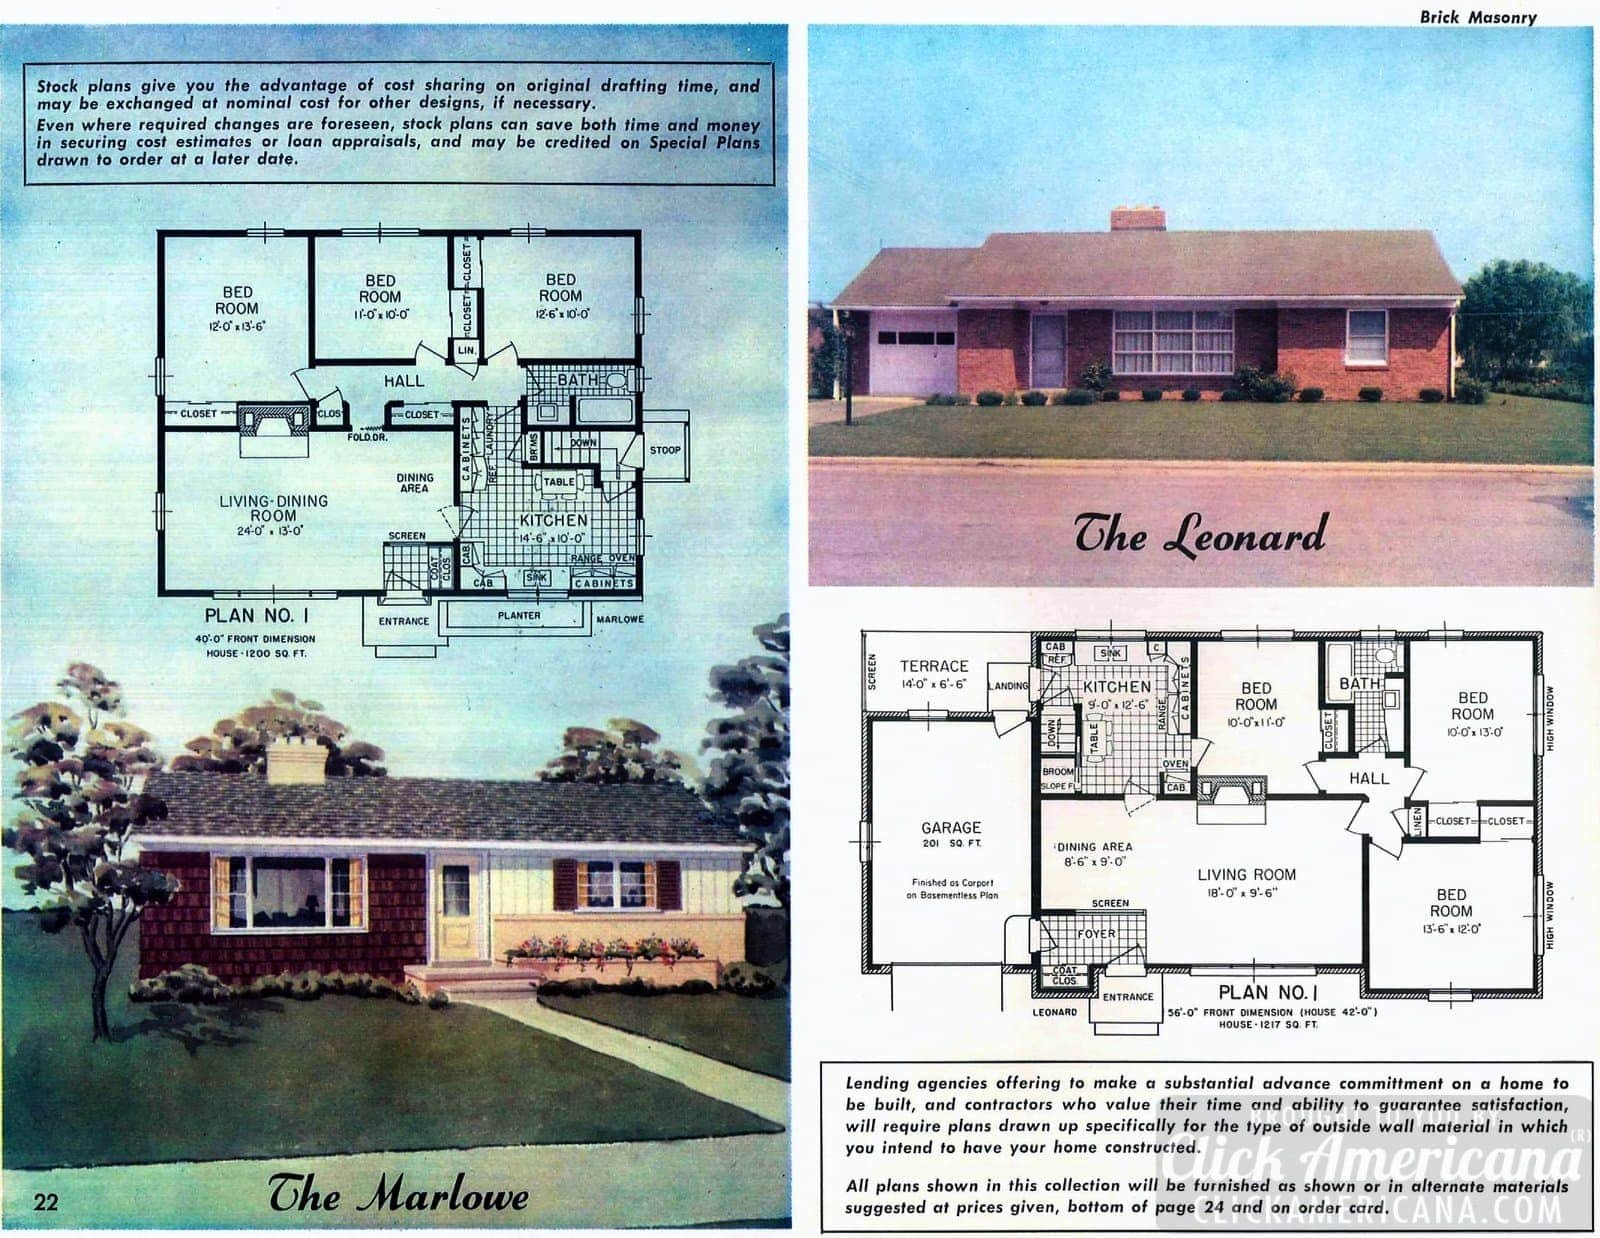 Home design plans from 1958: The Marlowe & The Leonard